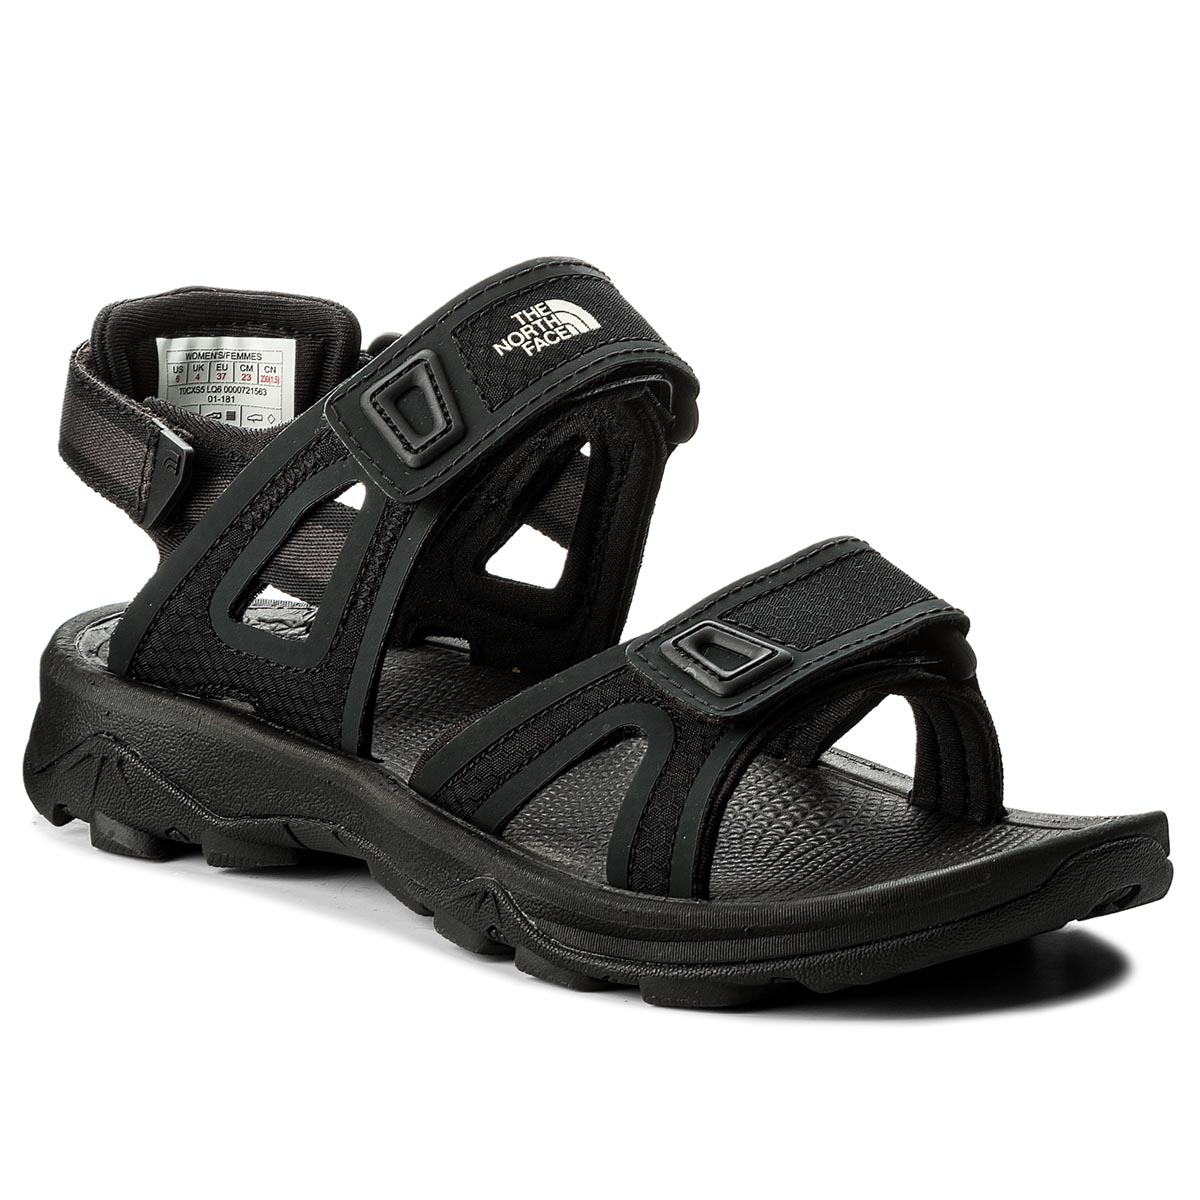 Sandale THE NORTH FACE - Hedgehog Sandal II T0CXS5LQ6 Tnf Black/Vintage White